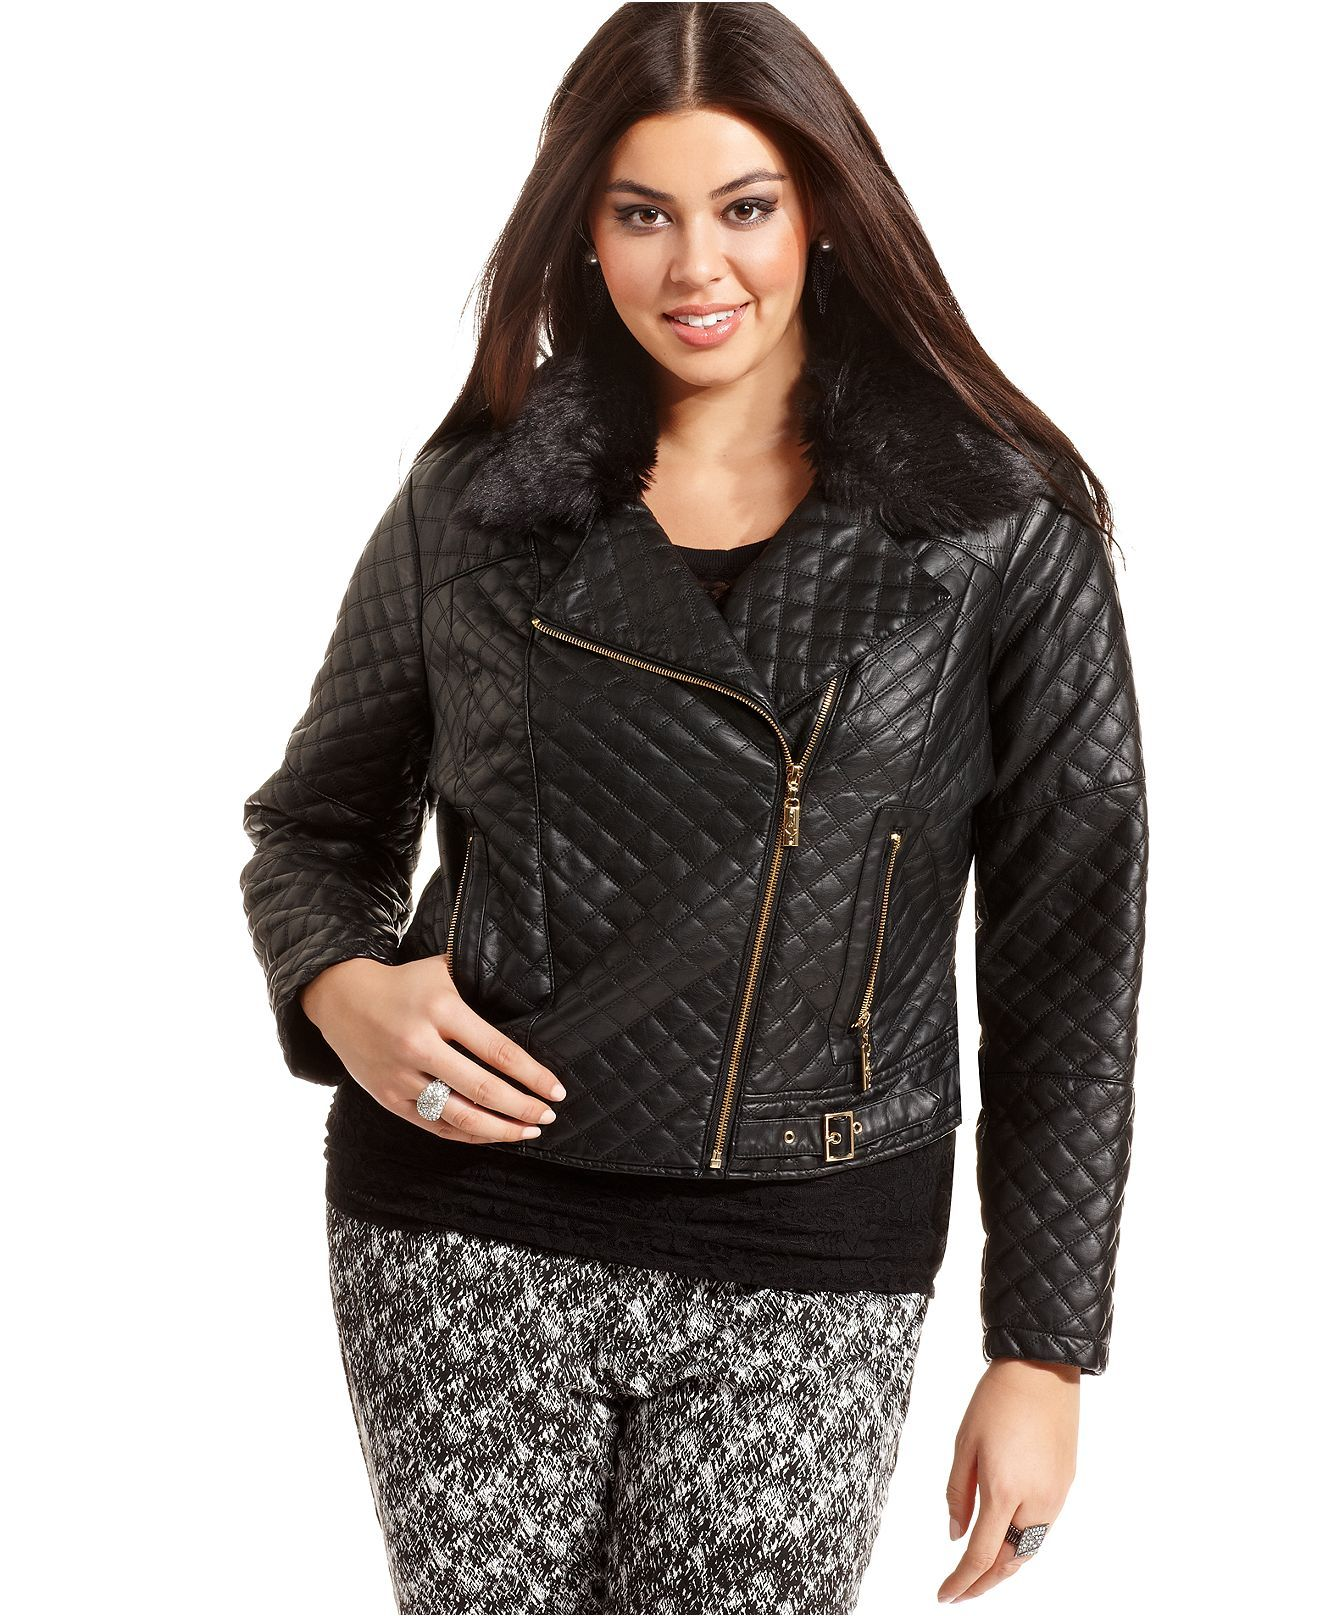 Baby Plus Size Jacket, Faux Leather Quilted Motorcycle